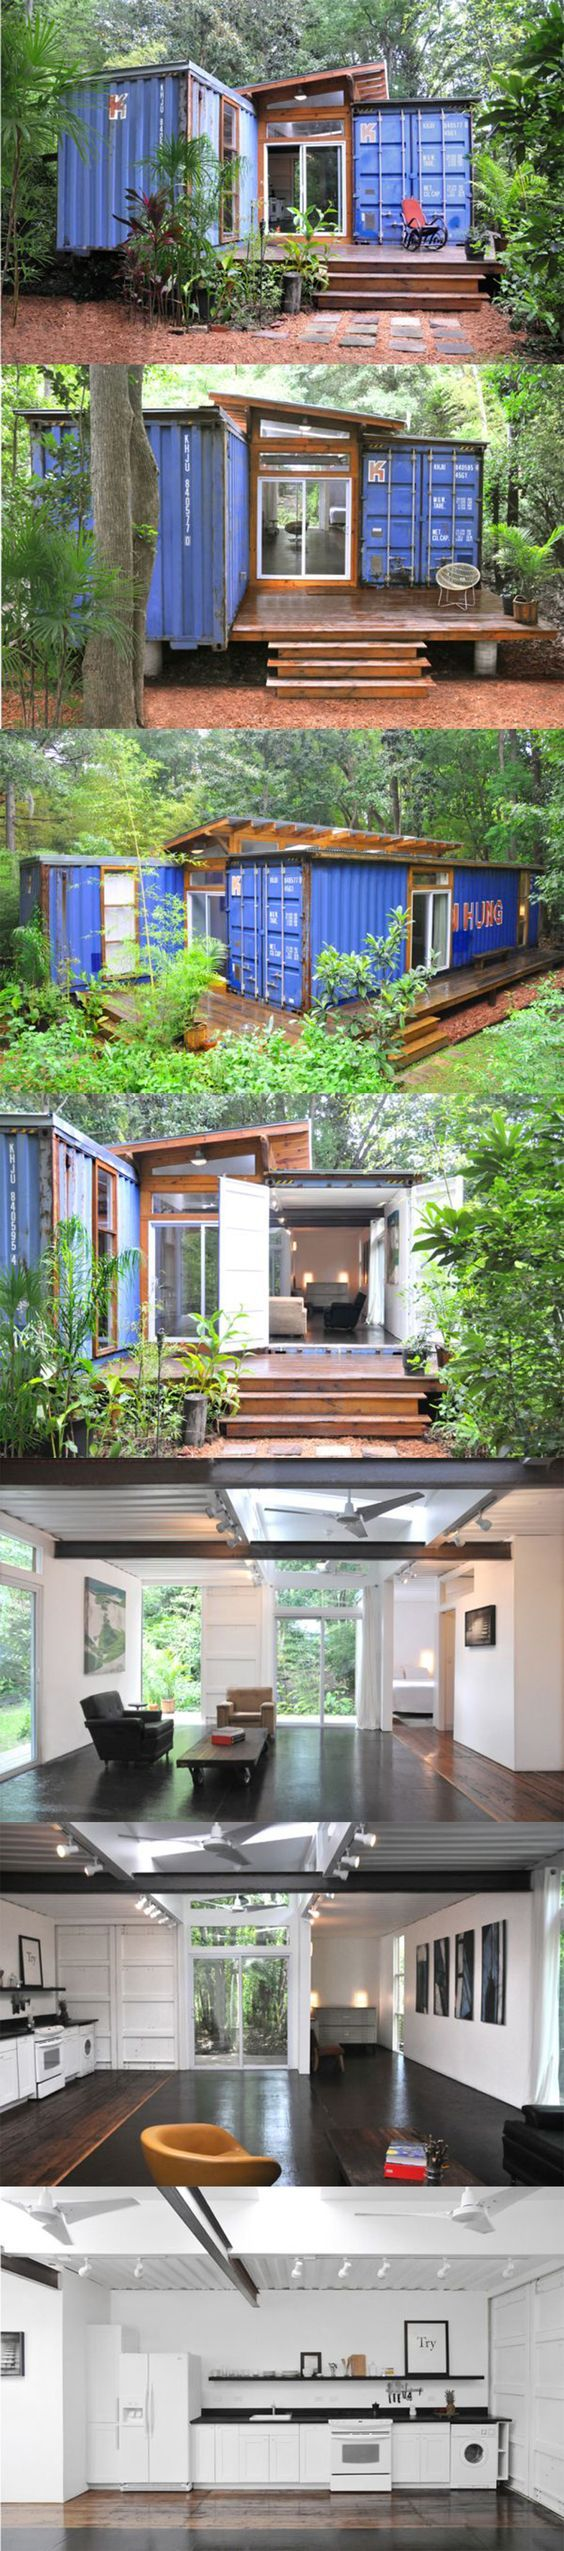 Shipping containers shipping container homes and container homes on pinterest - Foundation shipping container home ...